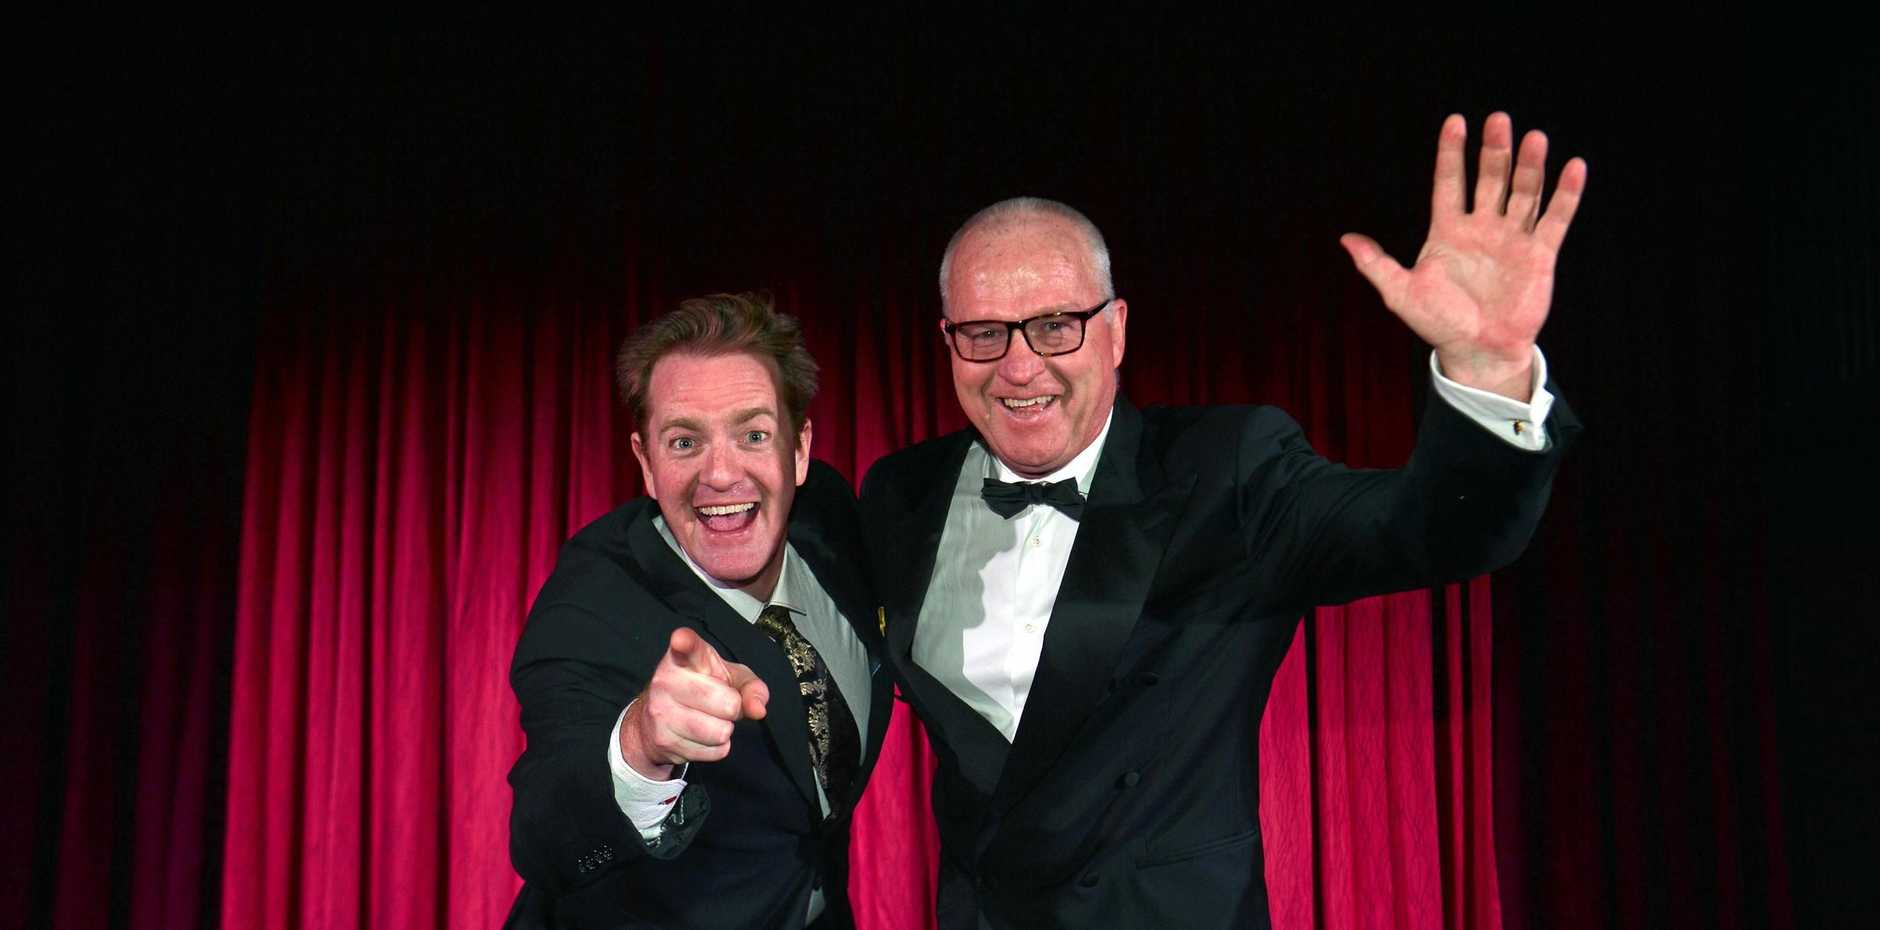 LIGHTS CAMERA ACTION: Actor James Millar clowning around with the Mayor Mark Jamieson.